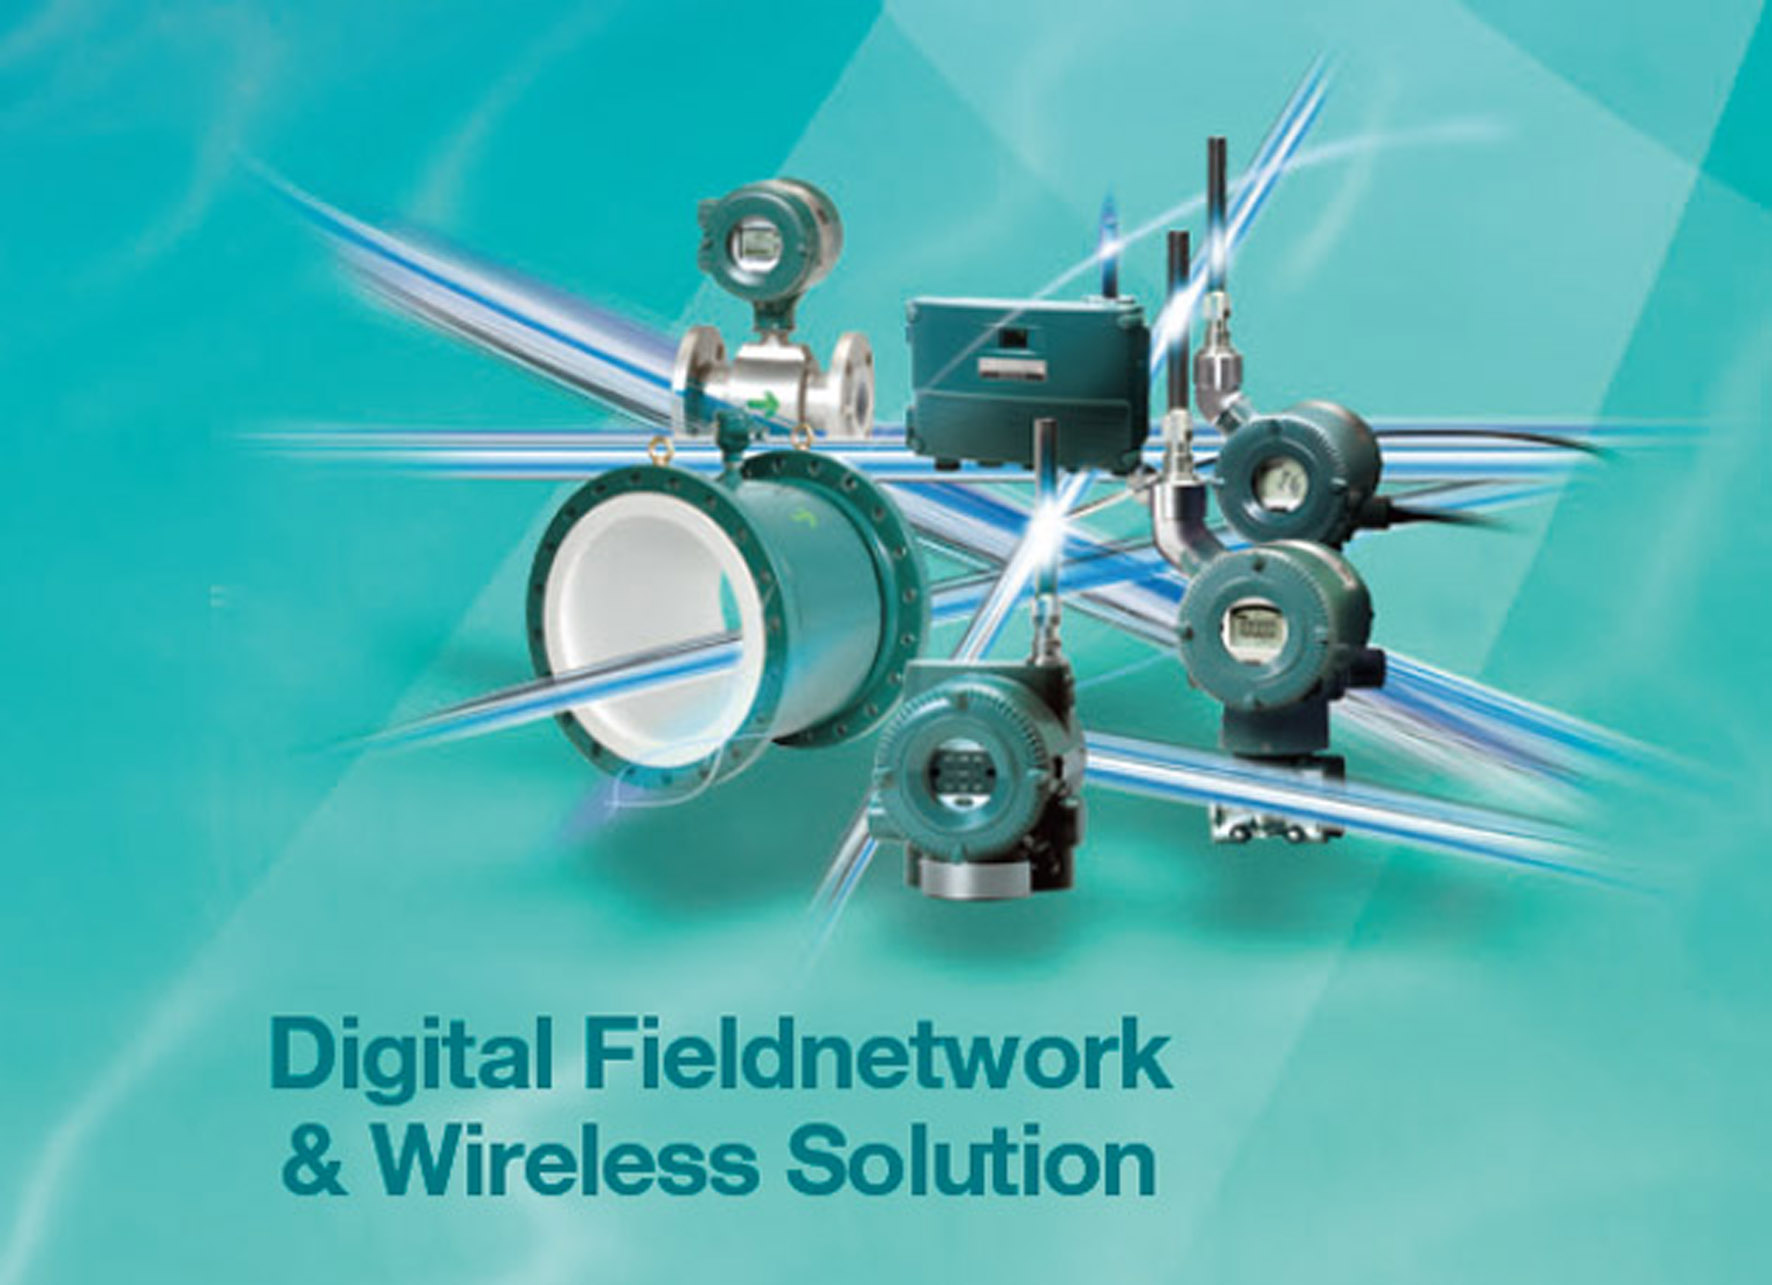 Digital Fieldnetwork & Wireless Solution